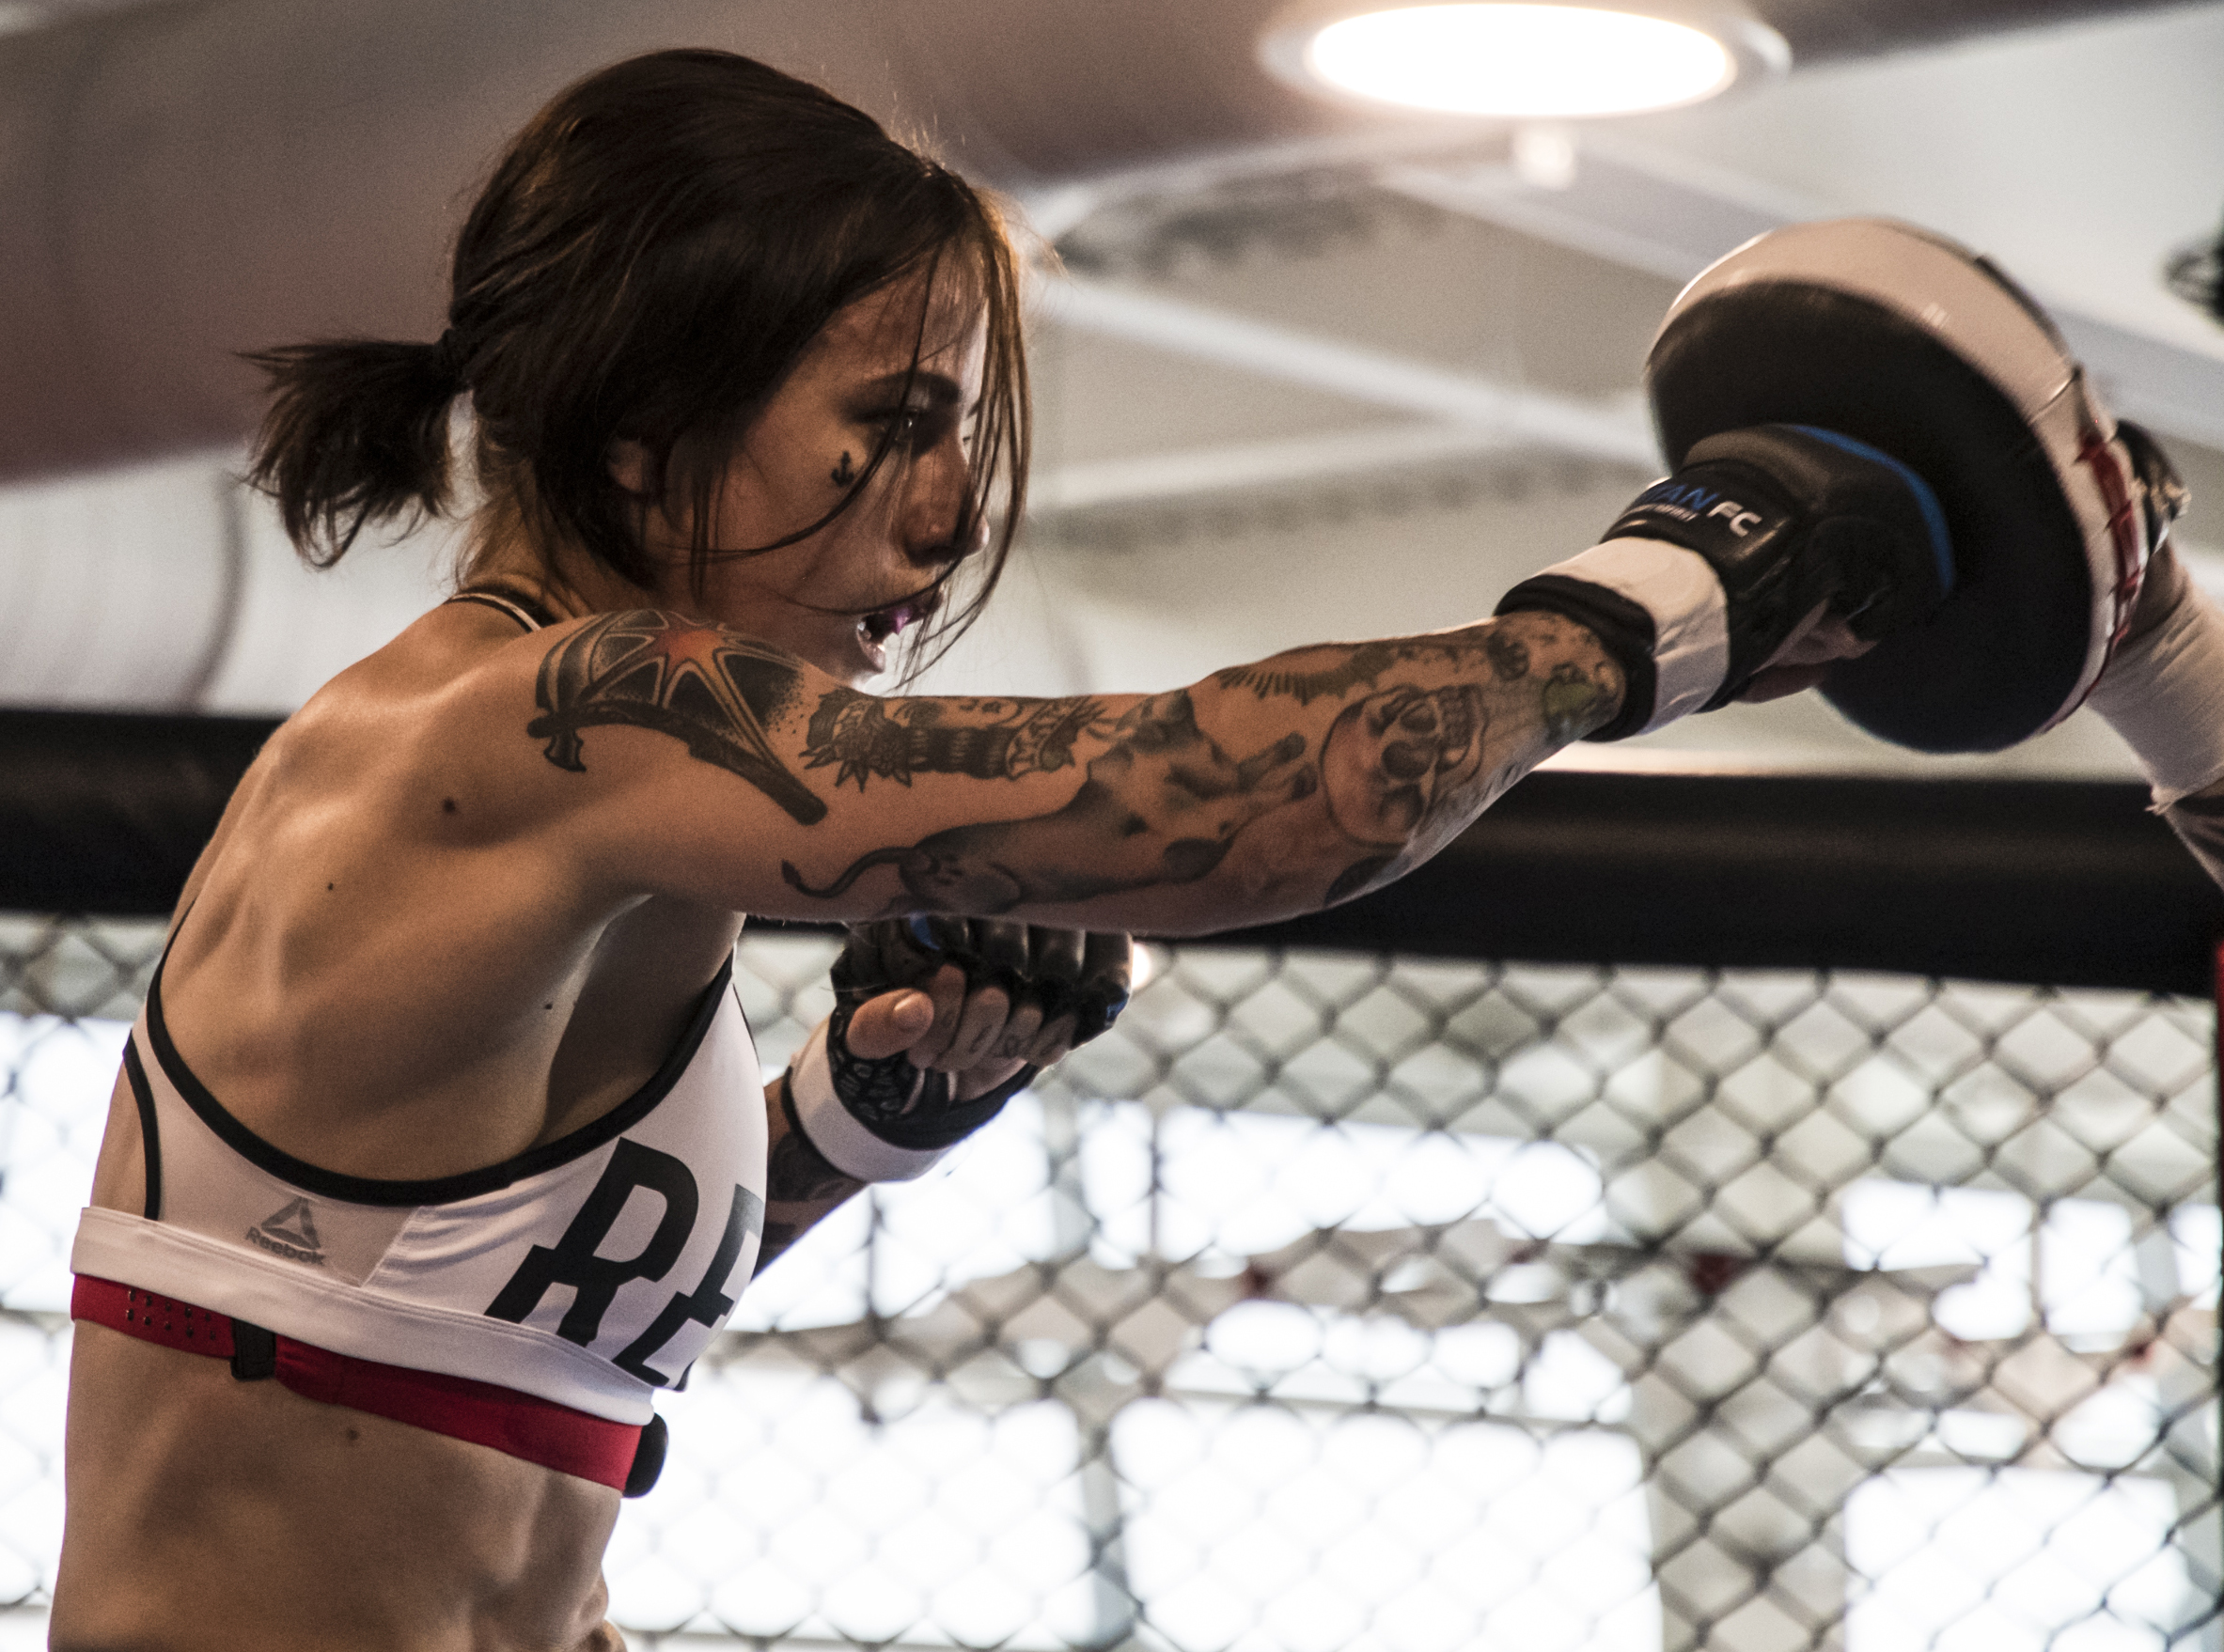 Clark at the UFC Perfomance Institute preparing for her fight at UFC Singapore on June 23. (Photo by Juan Cardenas/Zuffa LLC)